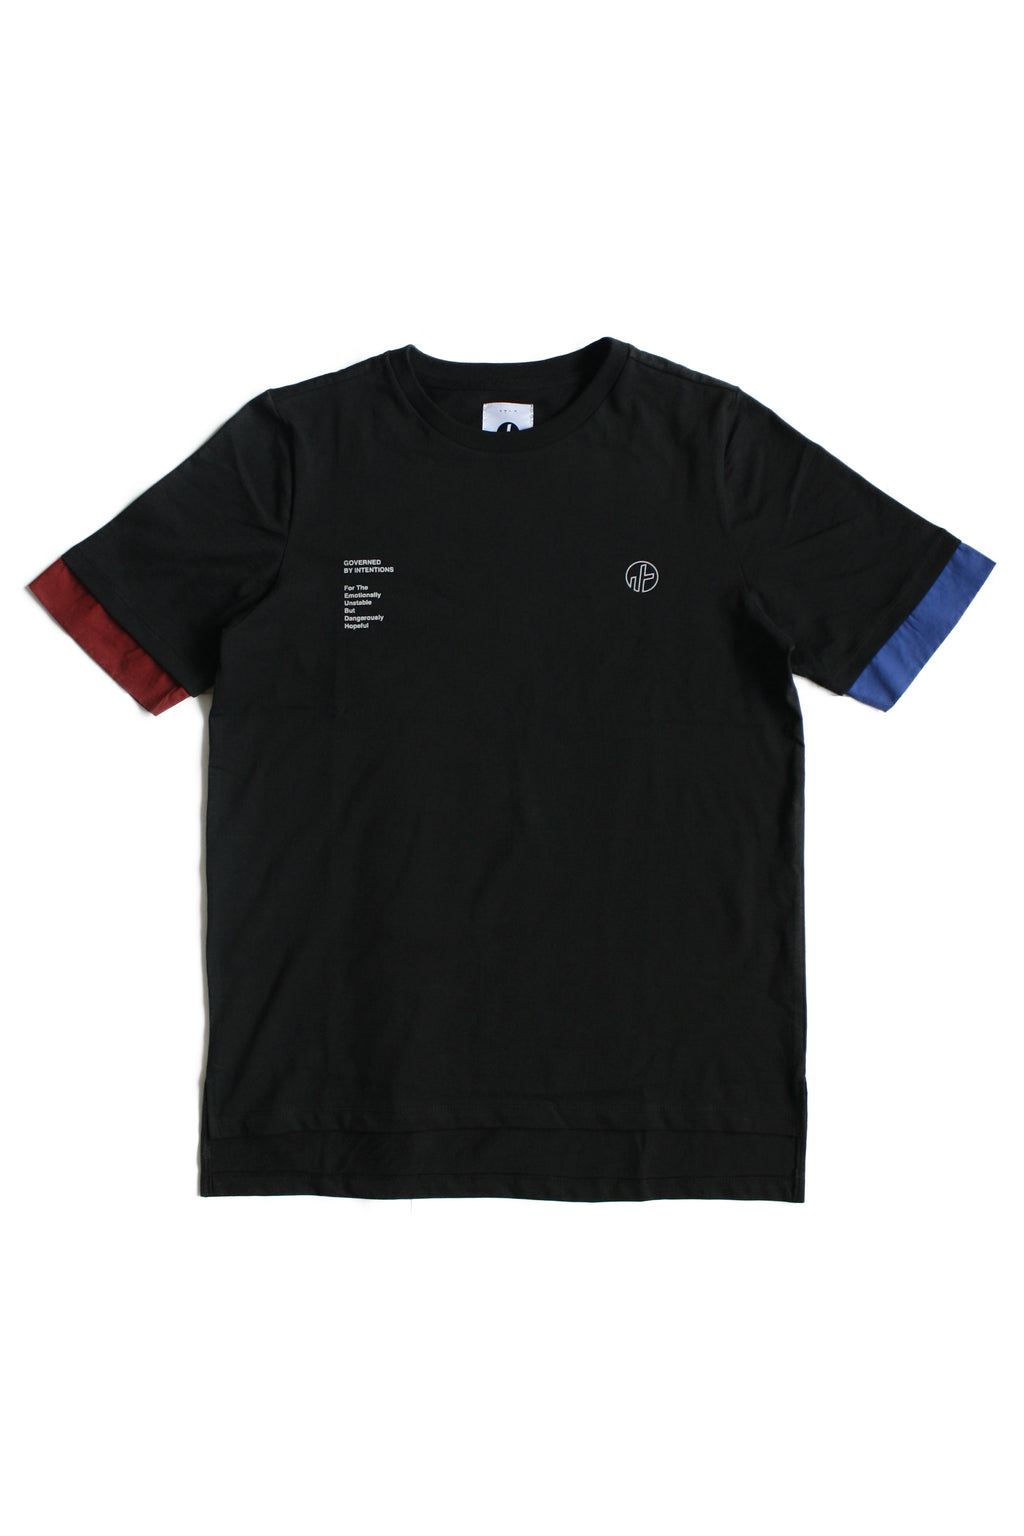 "2. ""GOVERNMENT"" Black Tee"